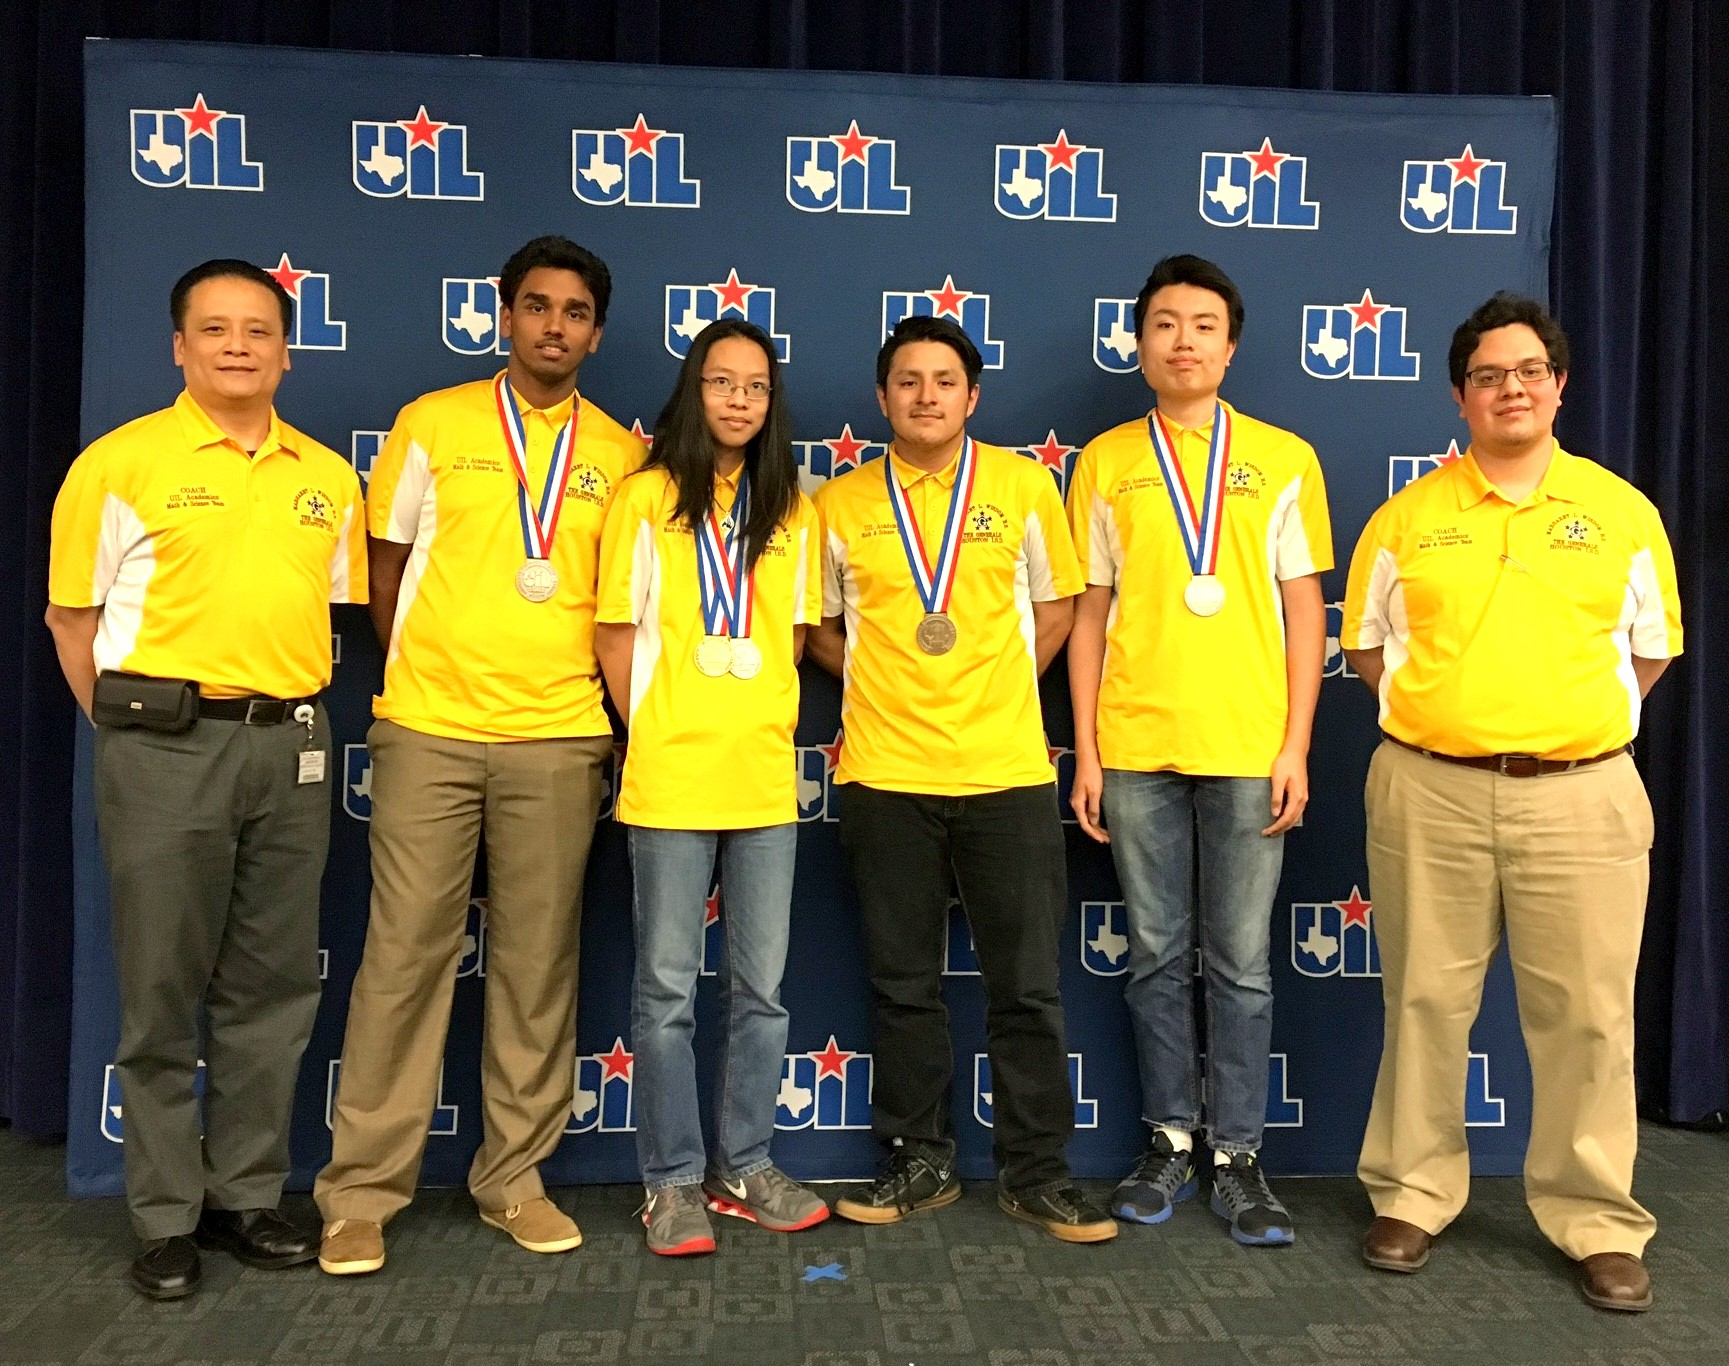 (L-R) Wisdom HS Principal Jonathan Trinh, Yash Gurijala, Ethan Song, Mauricio Guerrero, Aaron Ni, Head Coach Eridani Alcantar. The Generals finished in 2nd Place in Calculator Applications at the UIL Academic State Championships at the University of Texas in Austin.